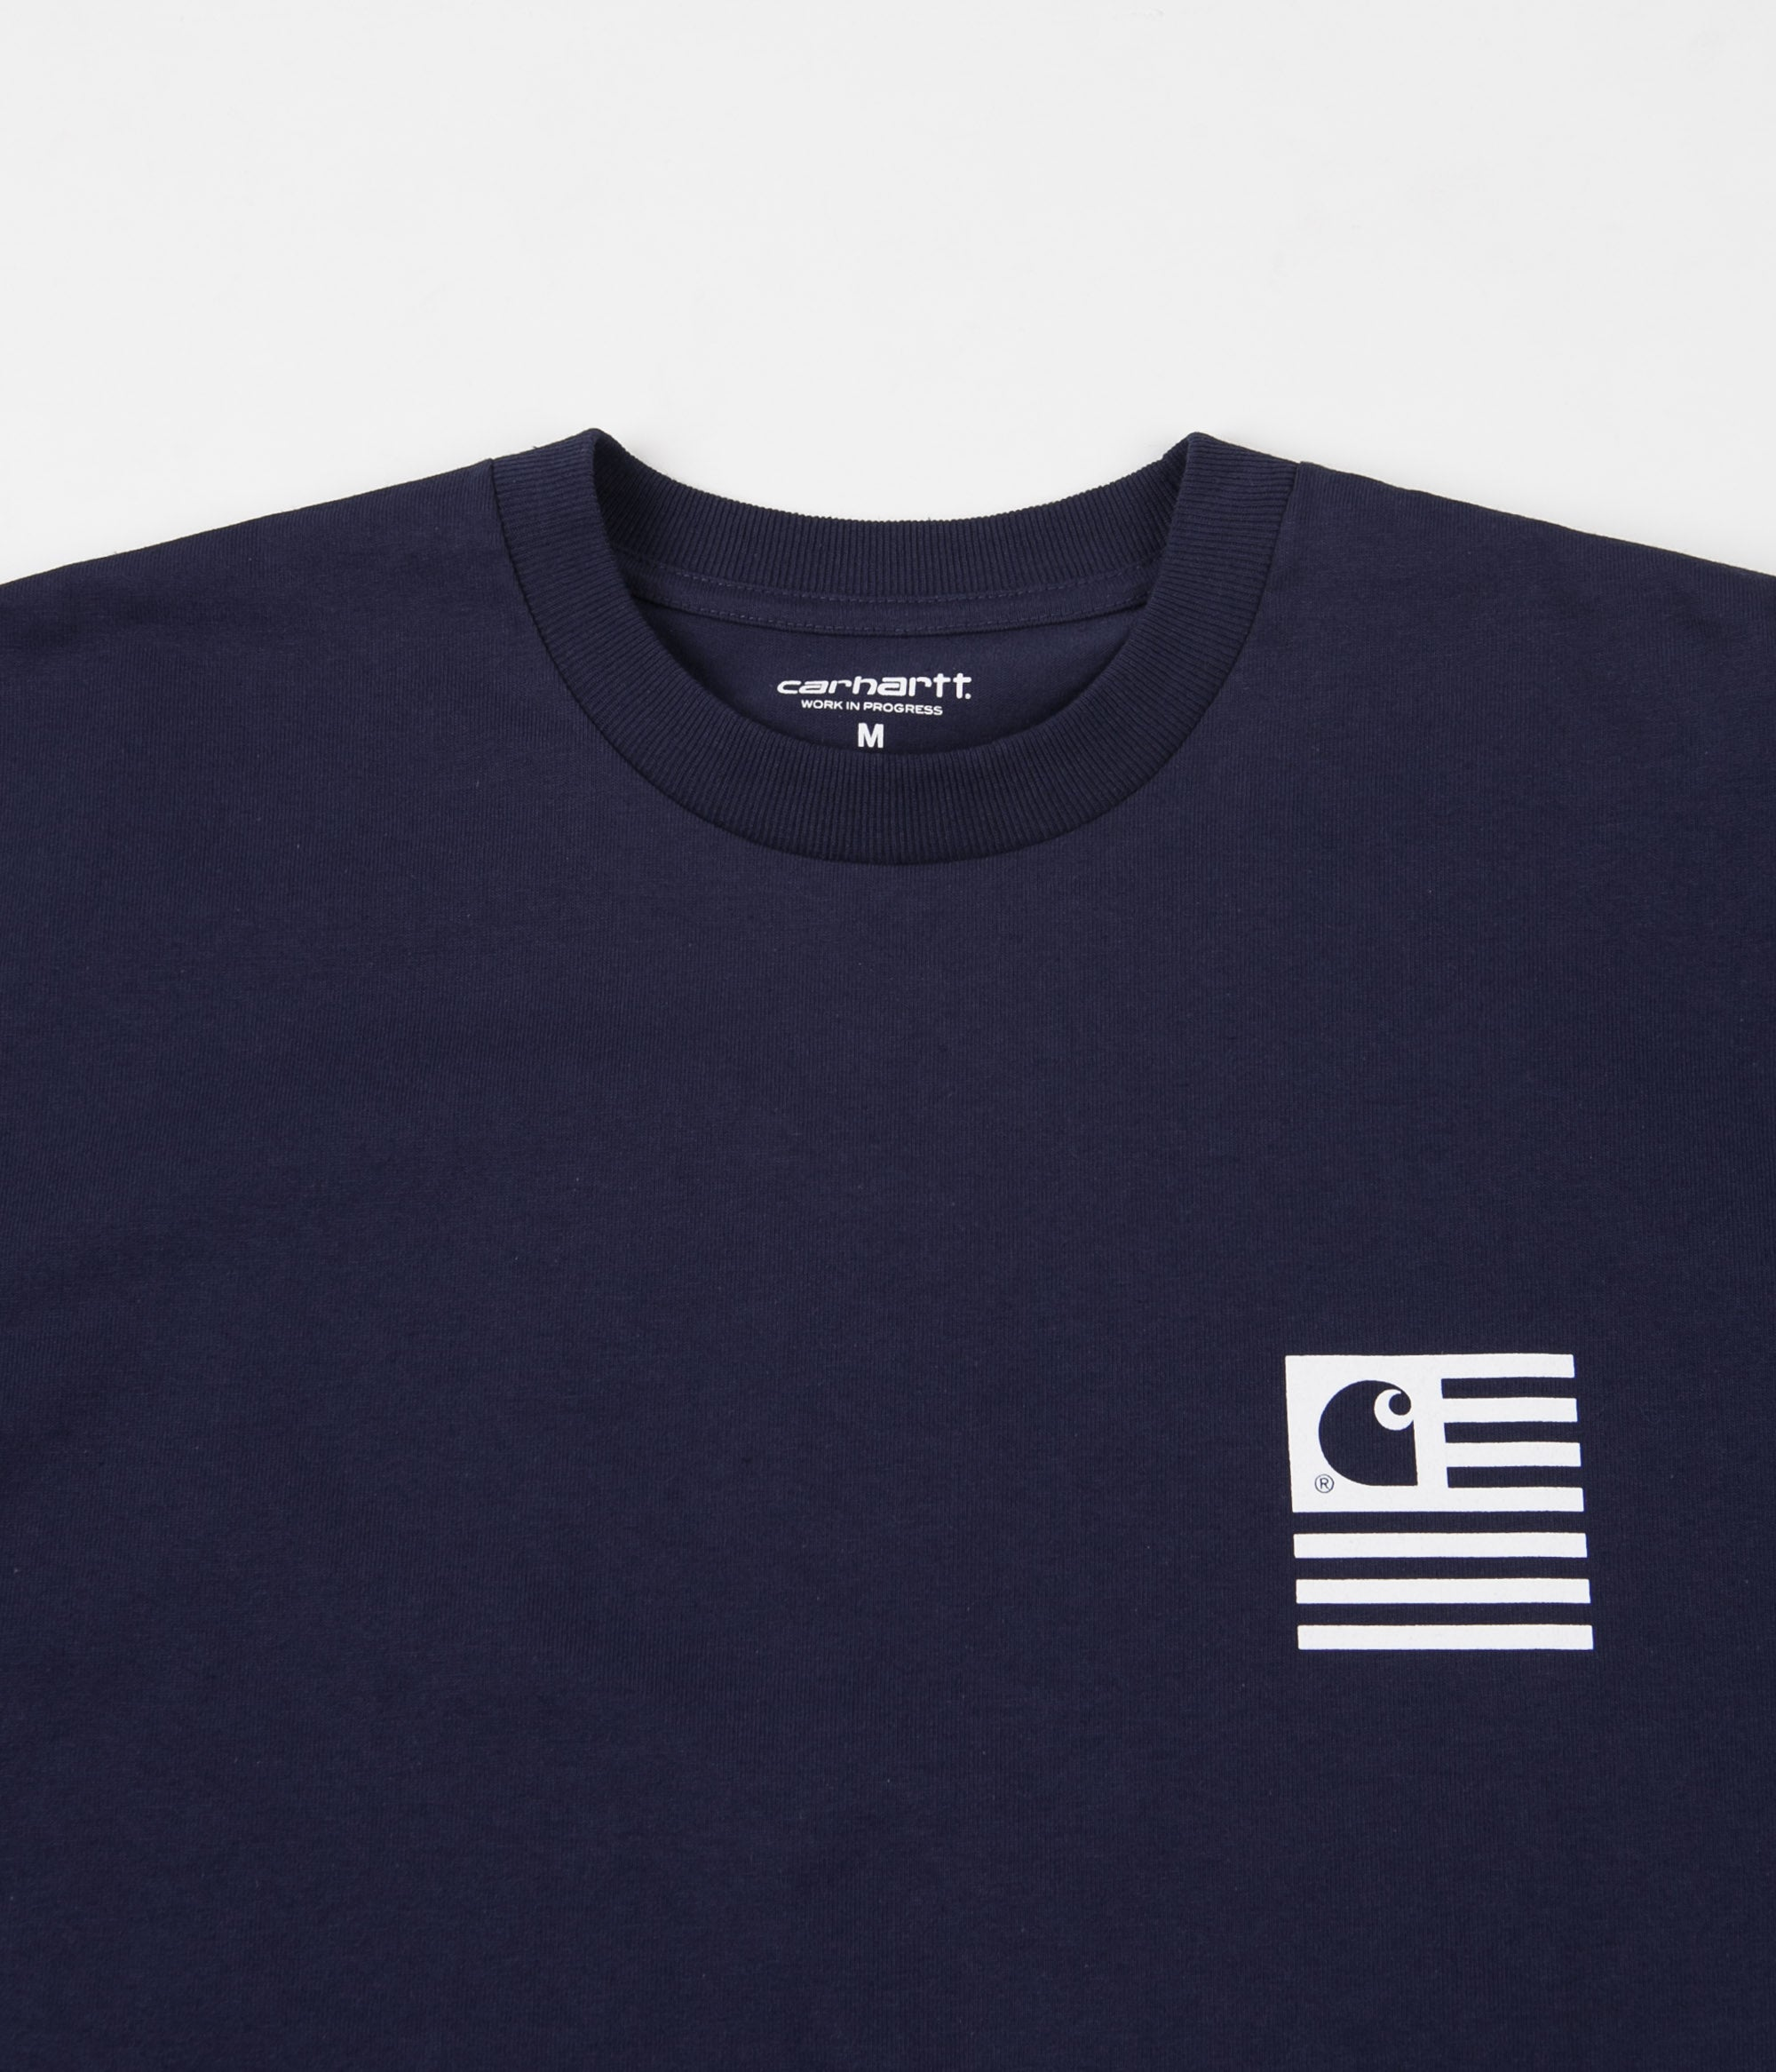 Carhartt Incognito T-Shirt - Blue / White / Black